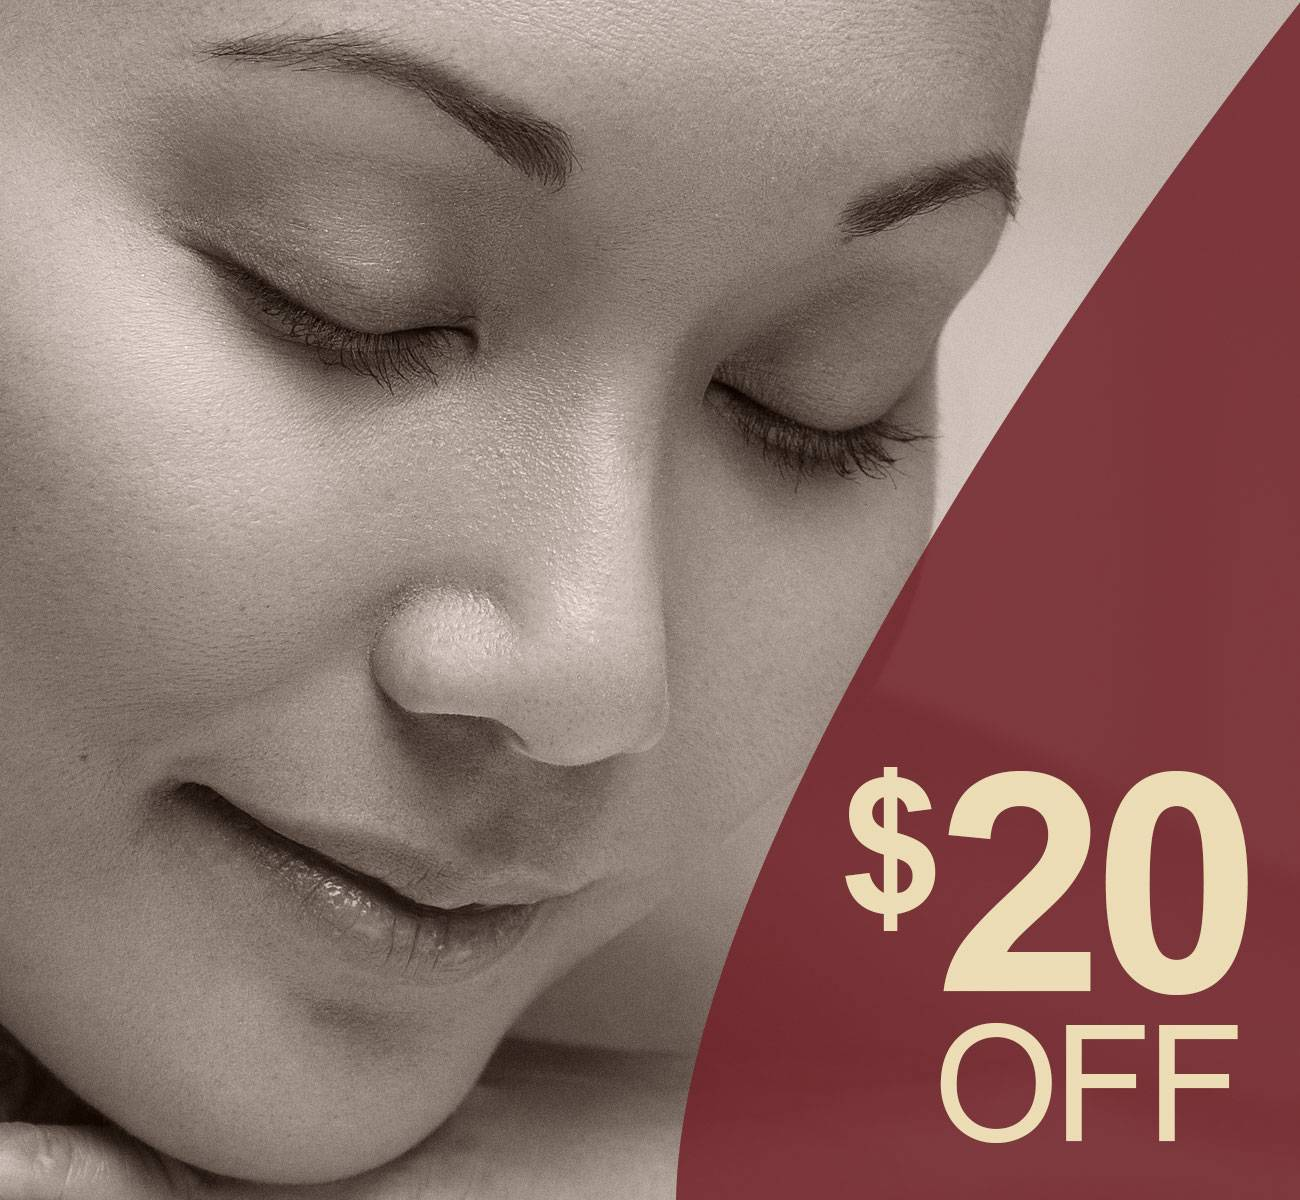 20 off 1 hour massage